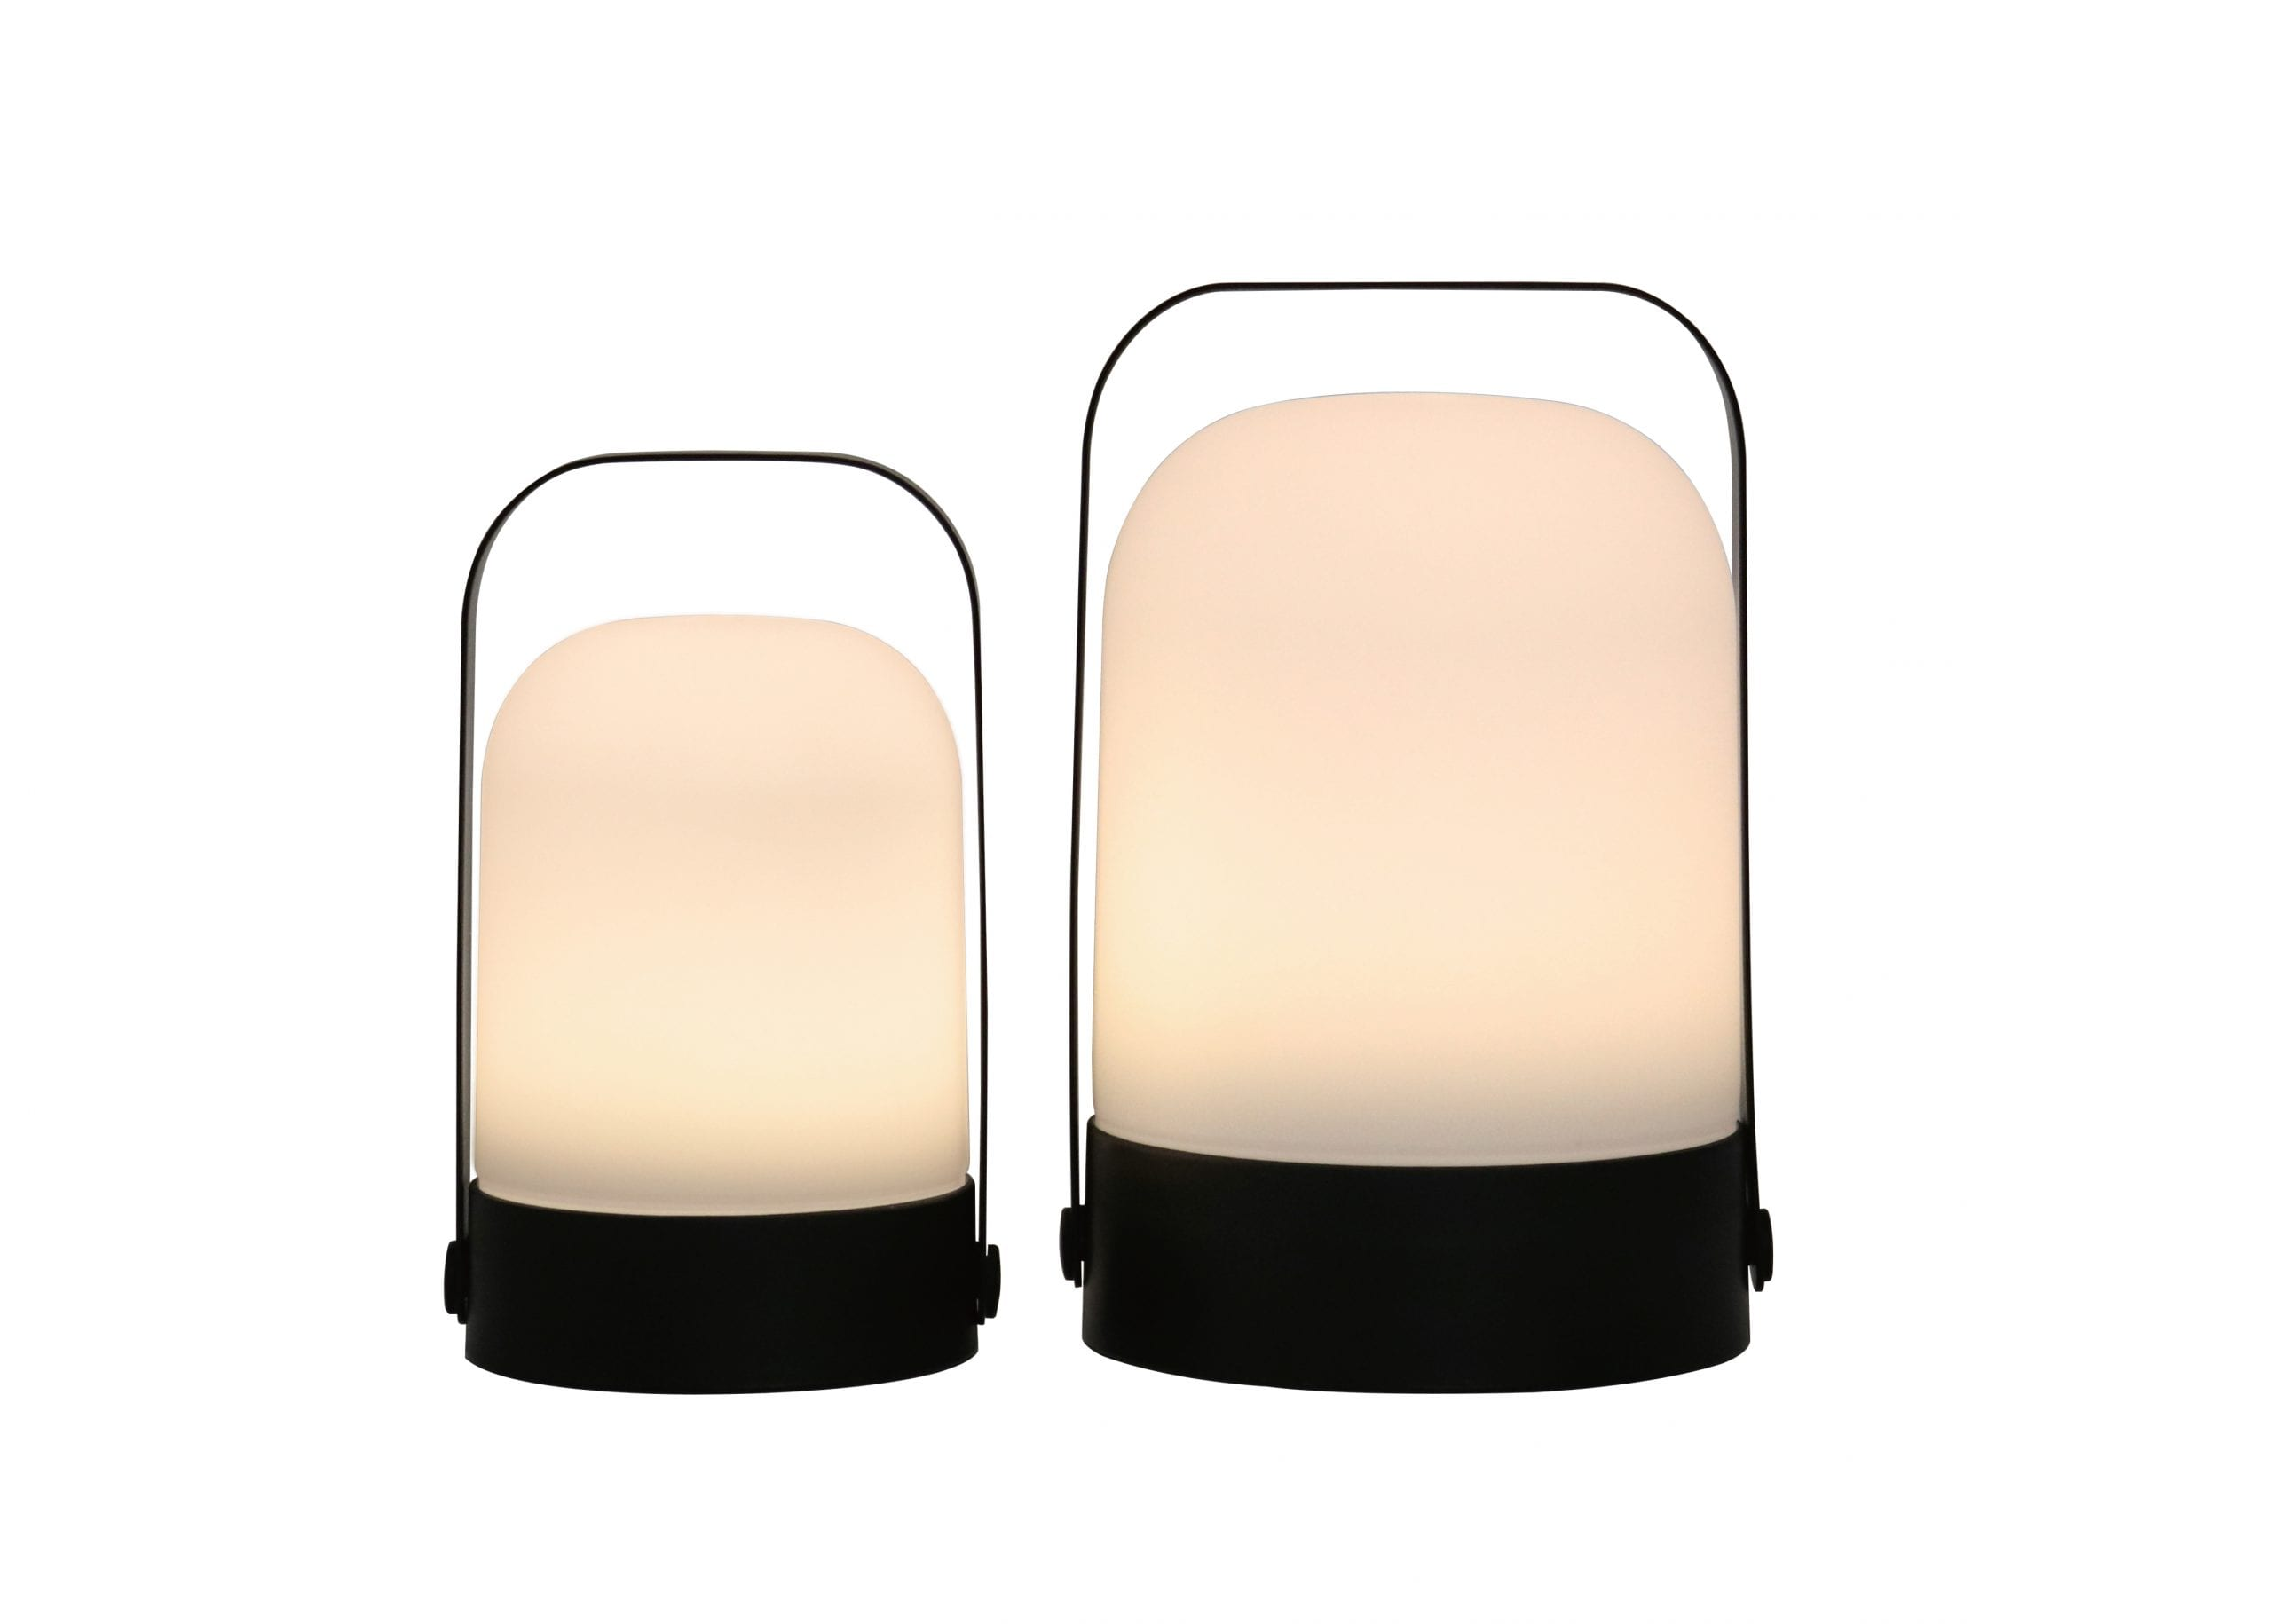 NorthPoint Home Decor Set of 2 LED Table Lamps